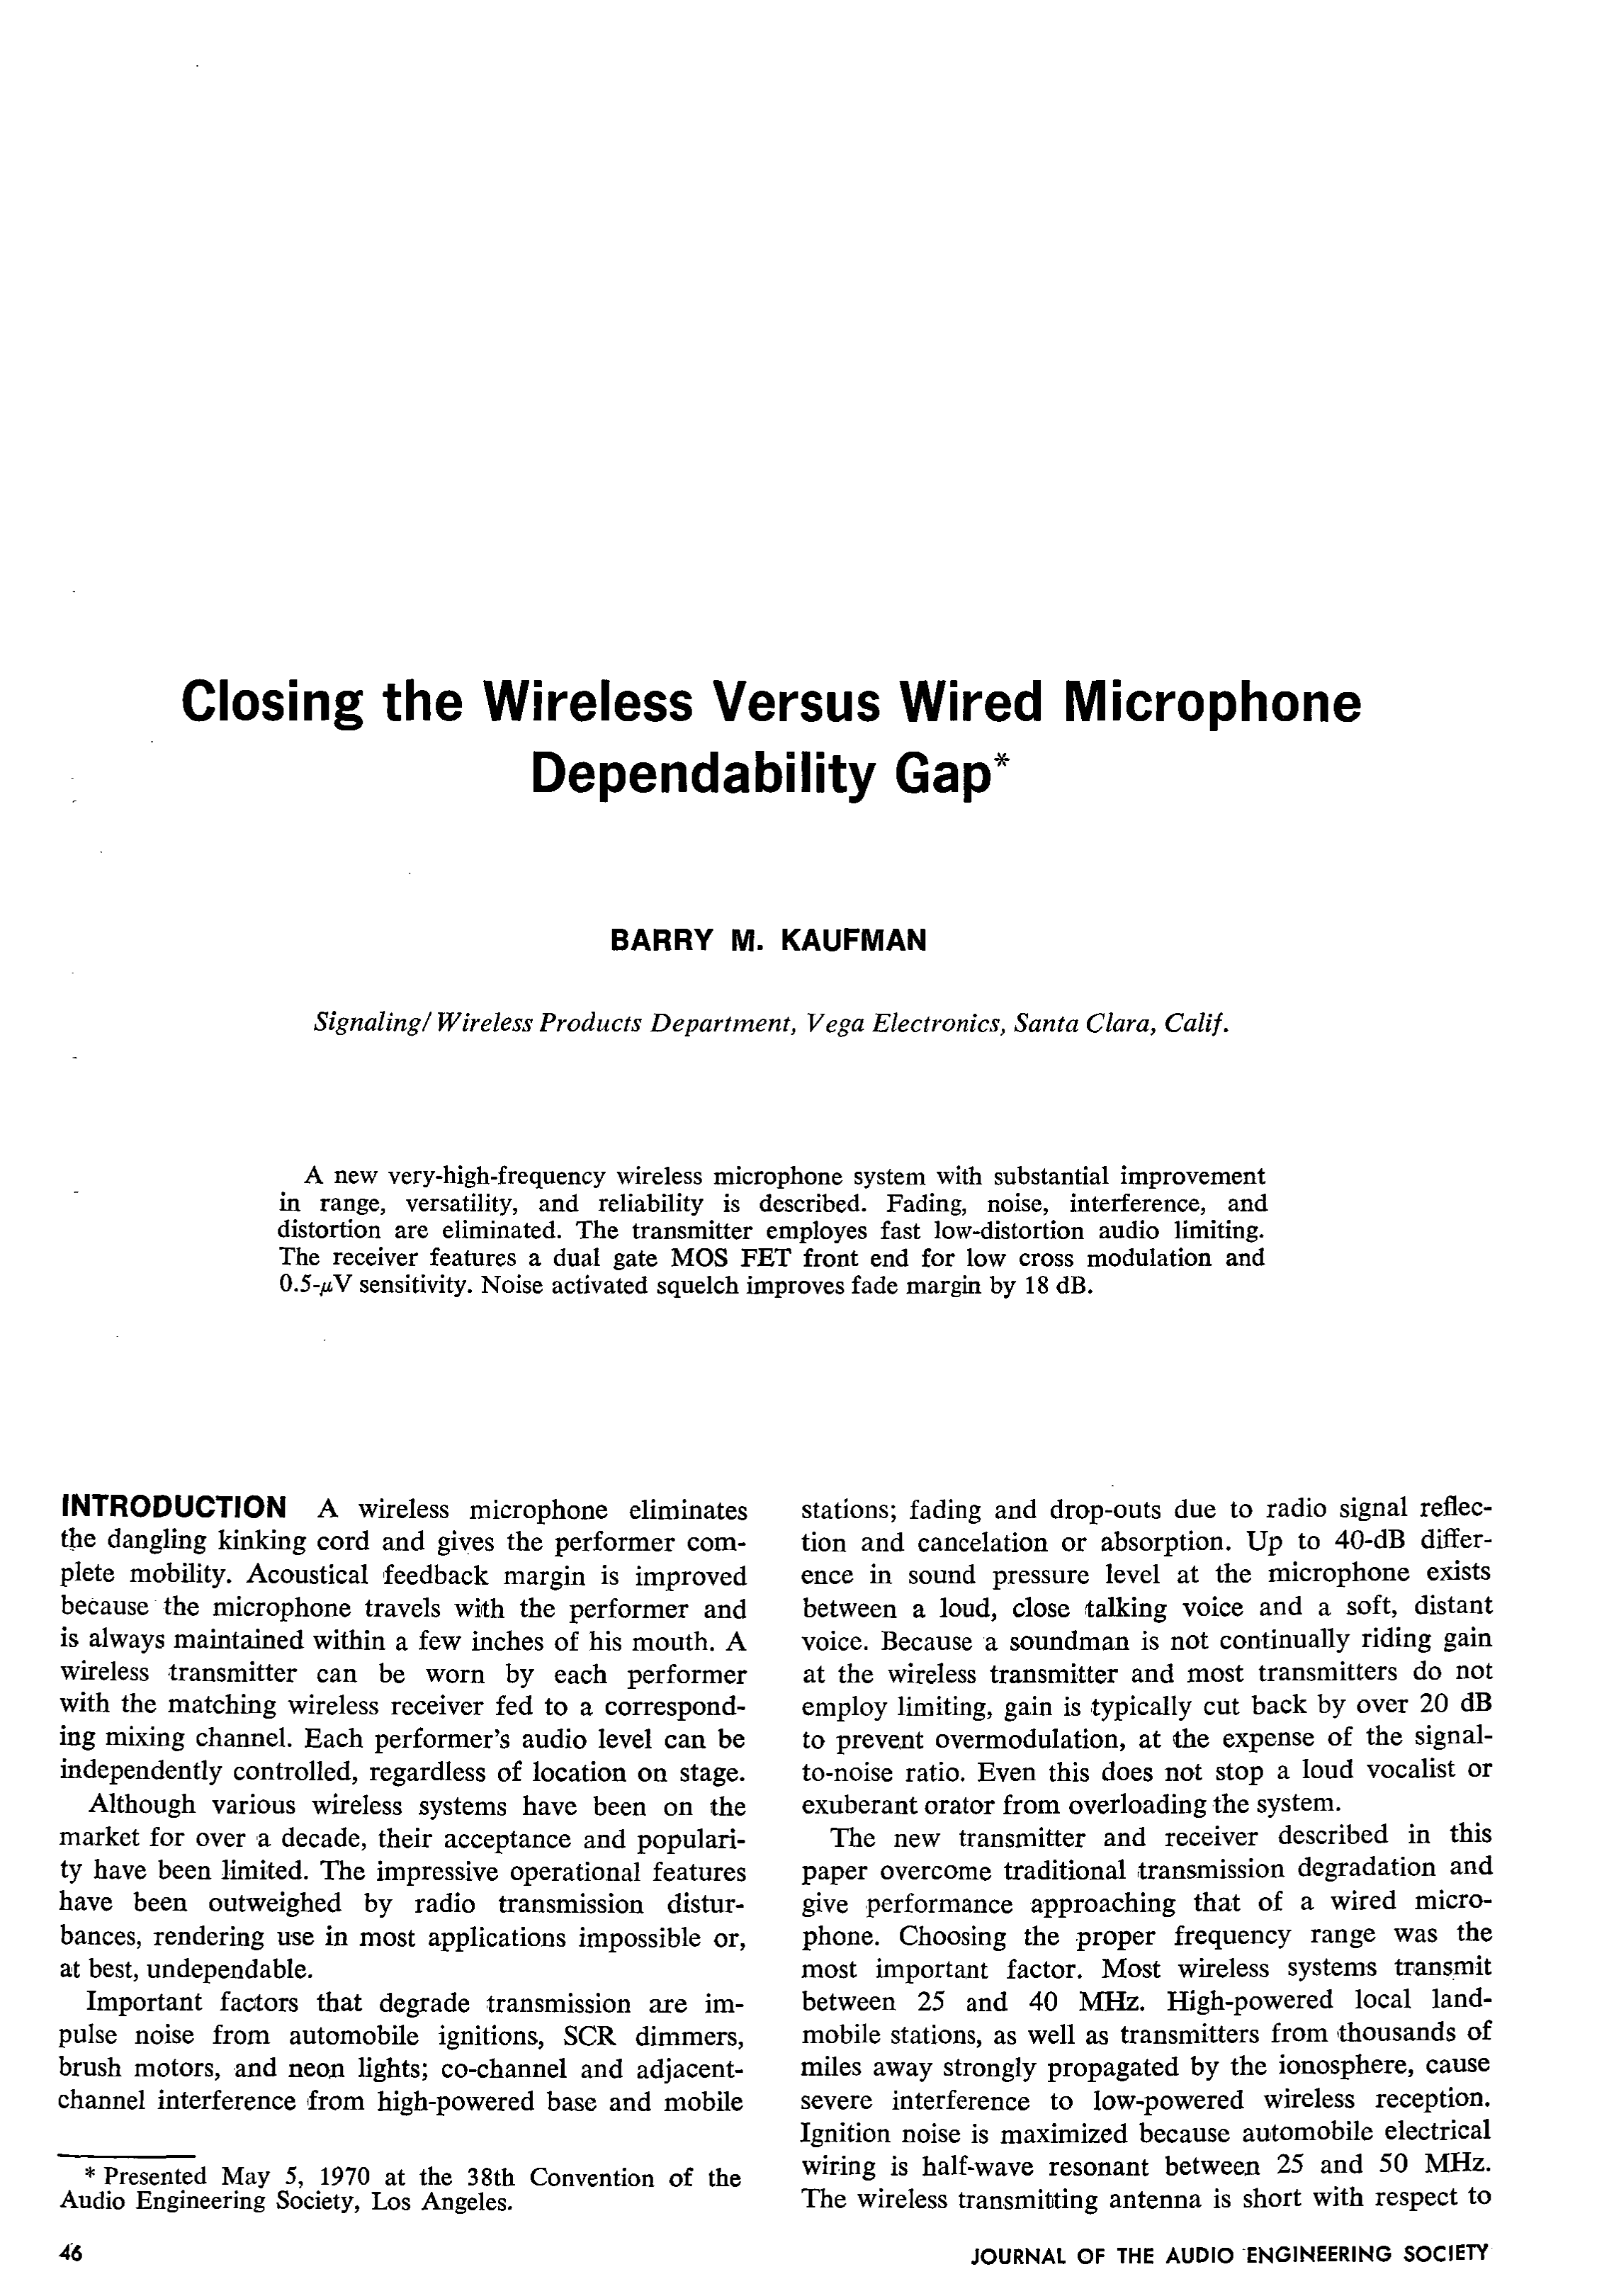 Figs 1and 2 Shows Transmitter And Receiver Circuit Respectivelythe Aes E Library Closing The Wireless Versus Wired Microphone Dependability Gap